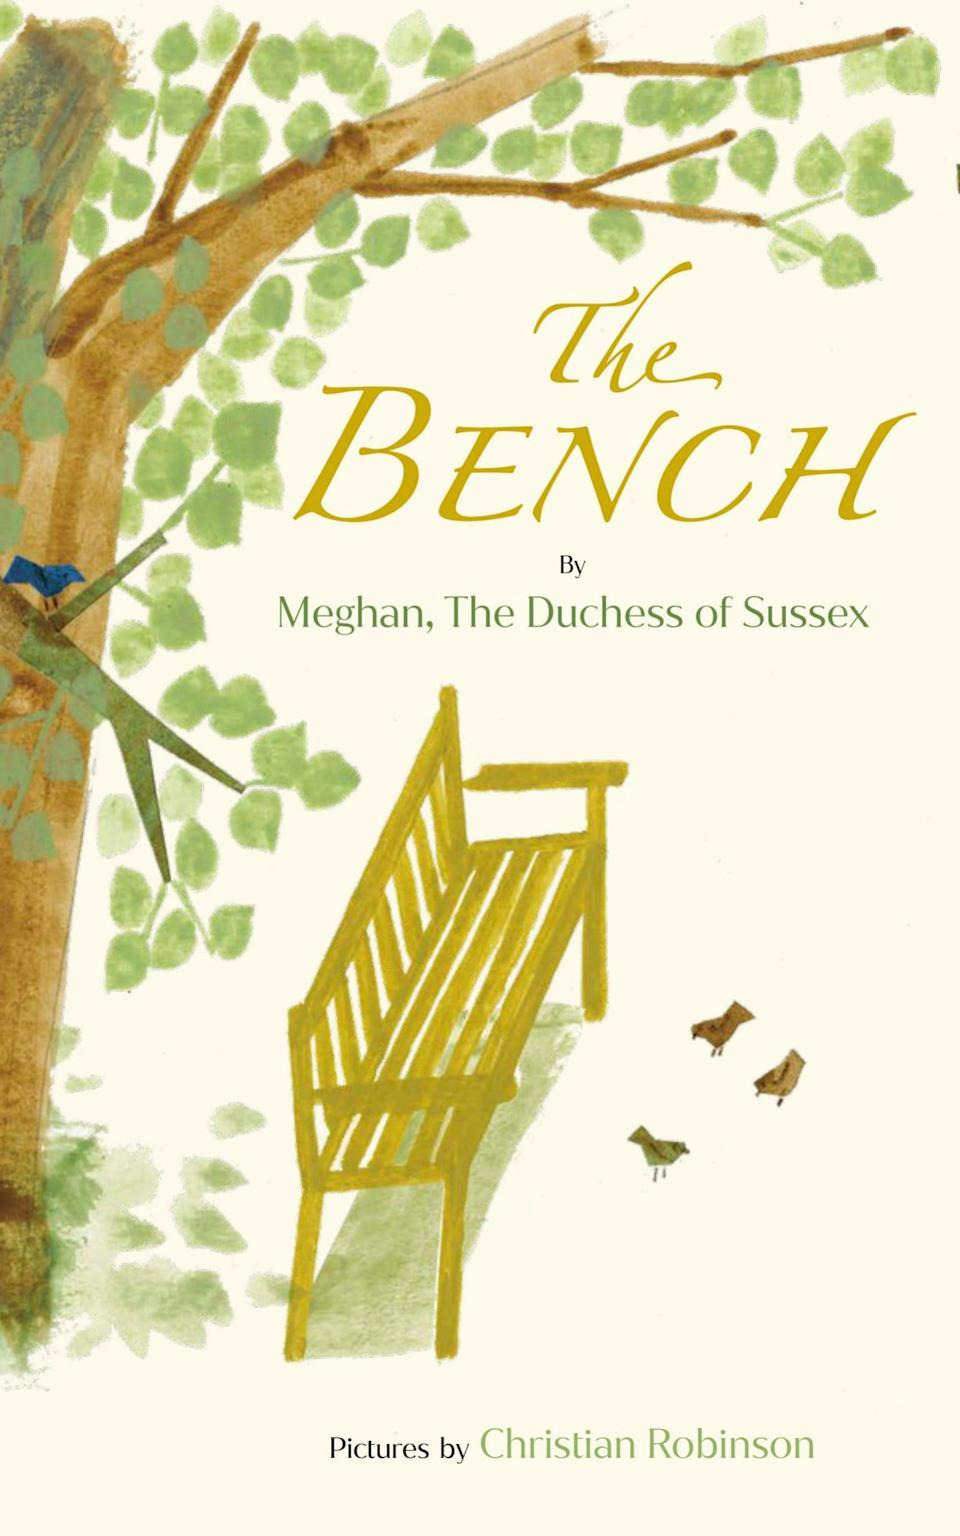 The Bench, by Meghan, The Duchess of Sussex - Random House